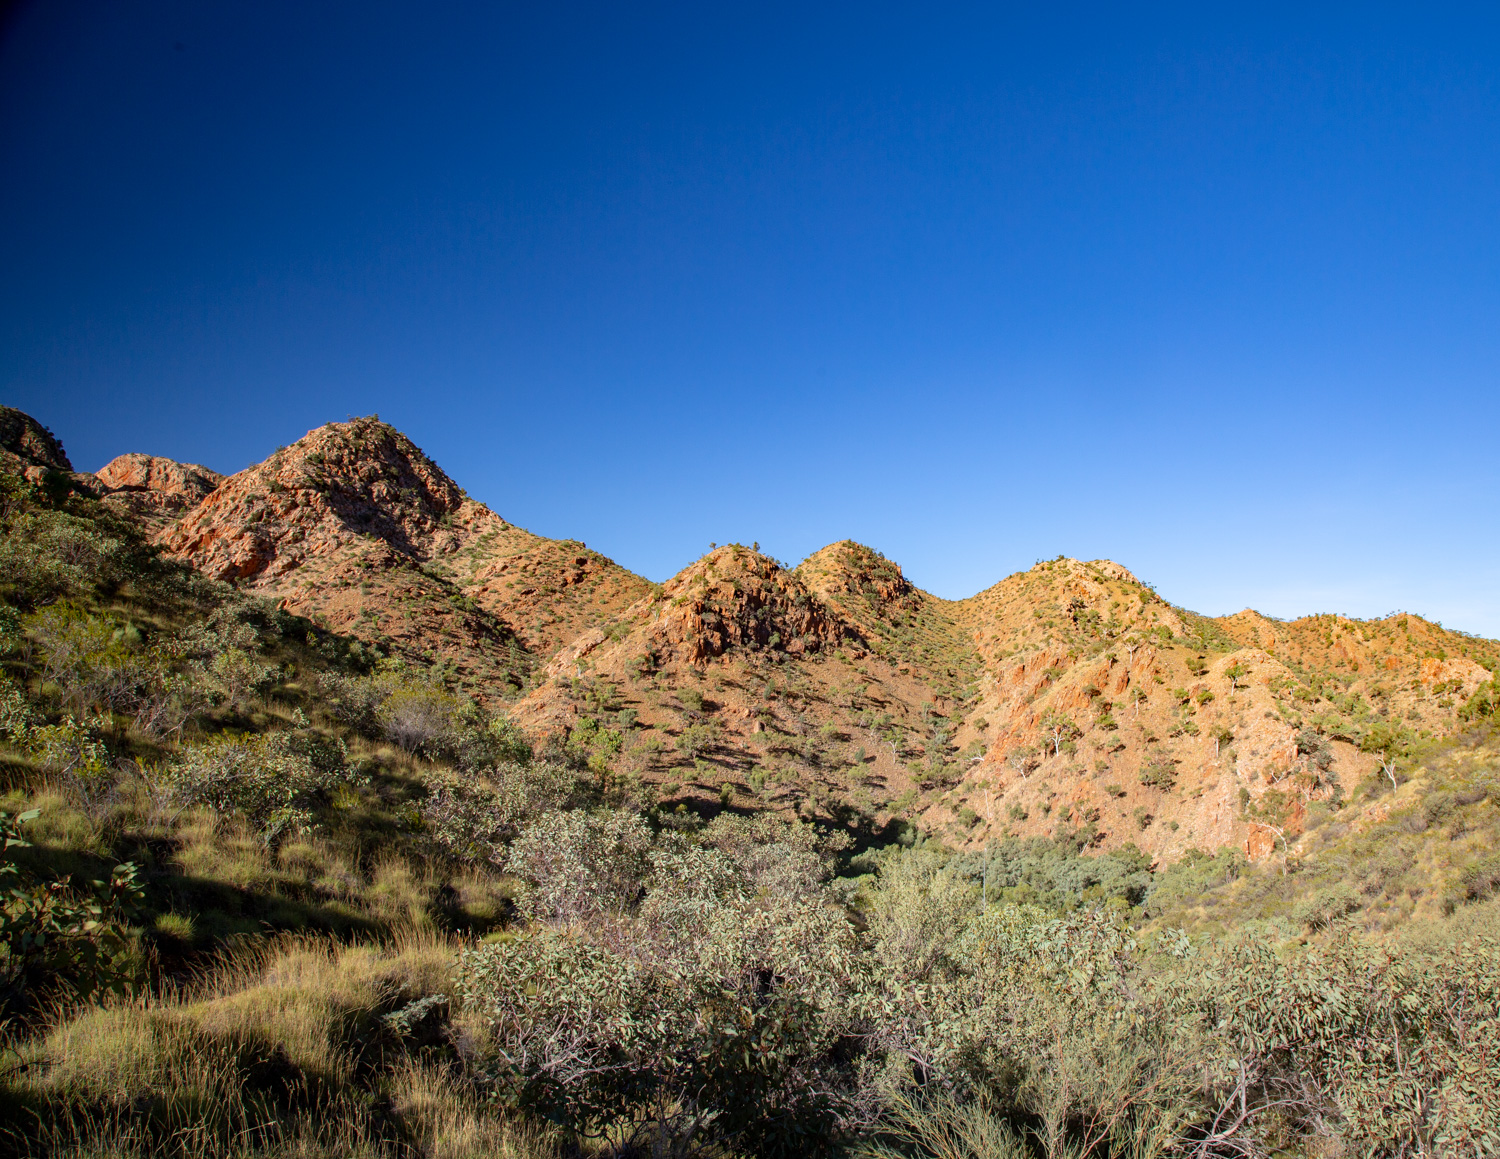 The walk by Standley Chasm in the West McDonnell Ranges